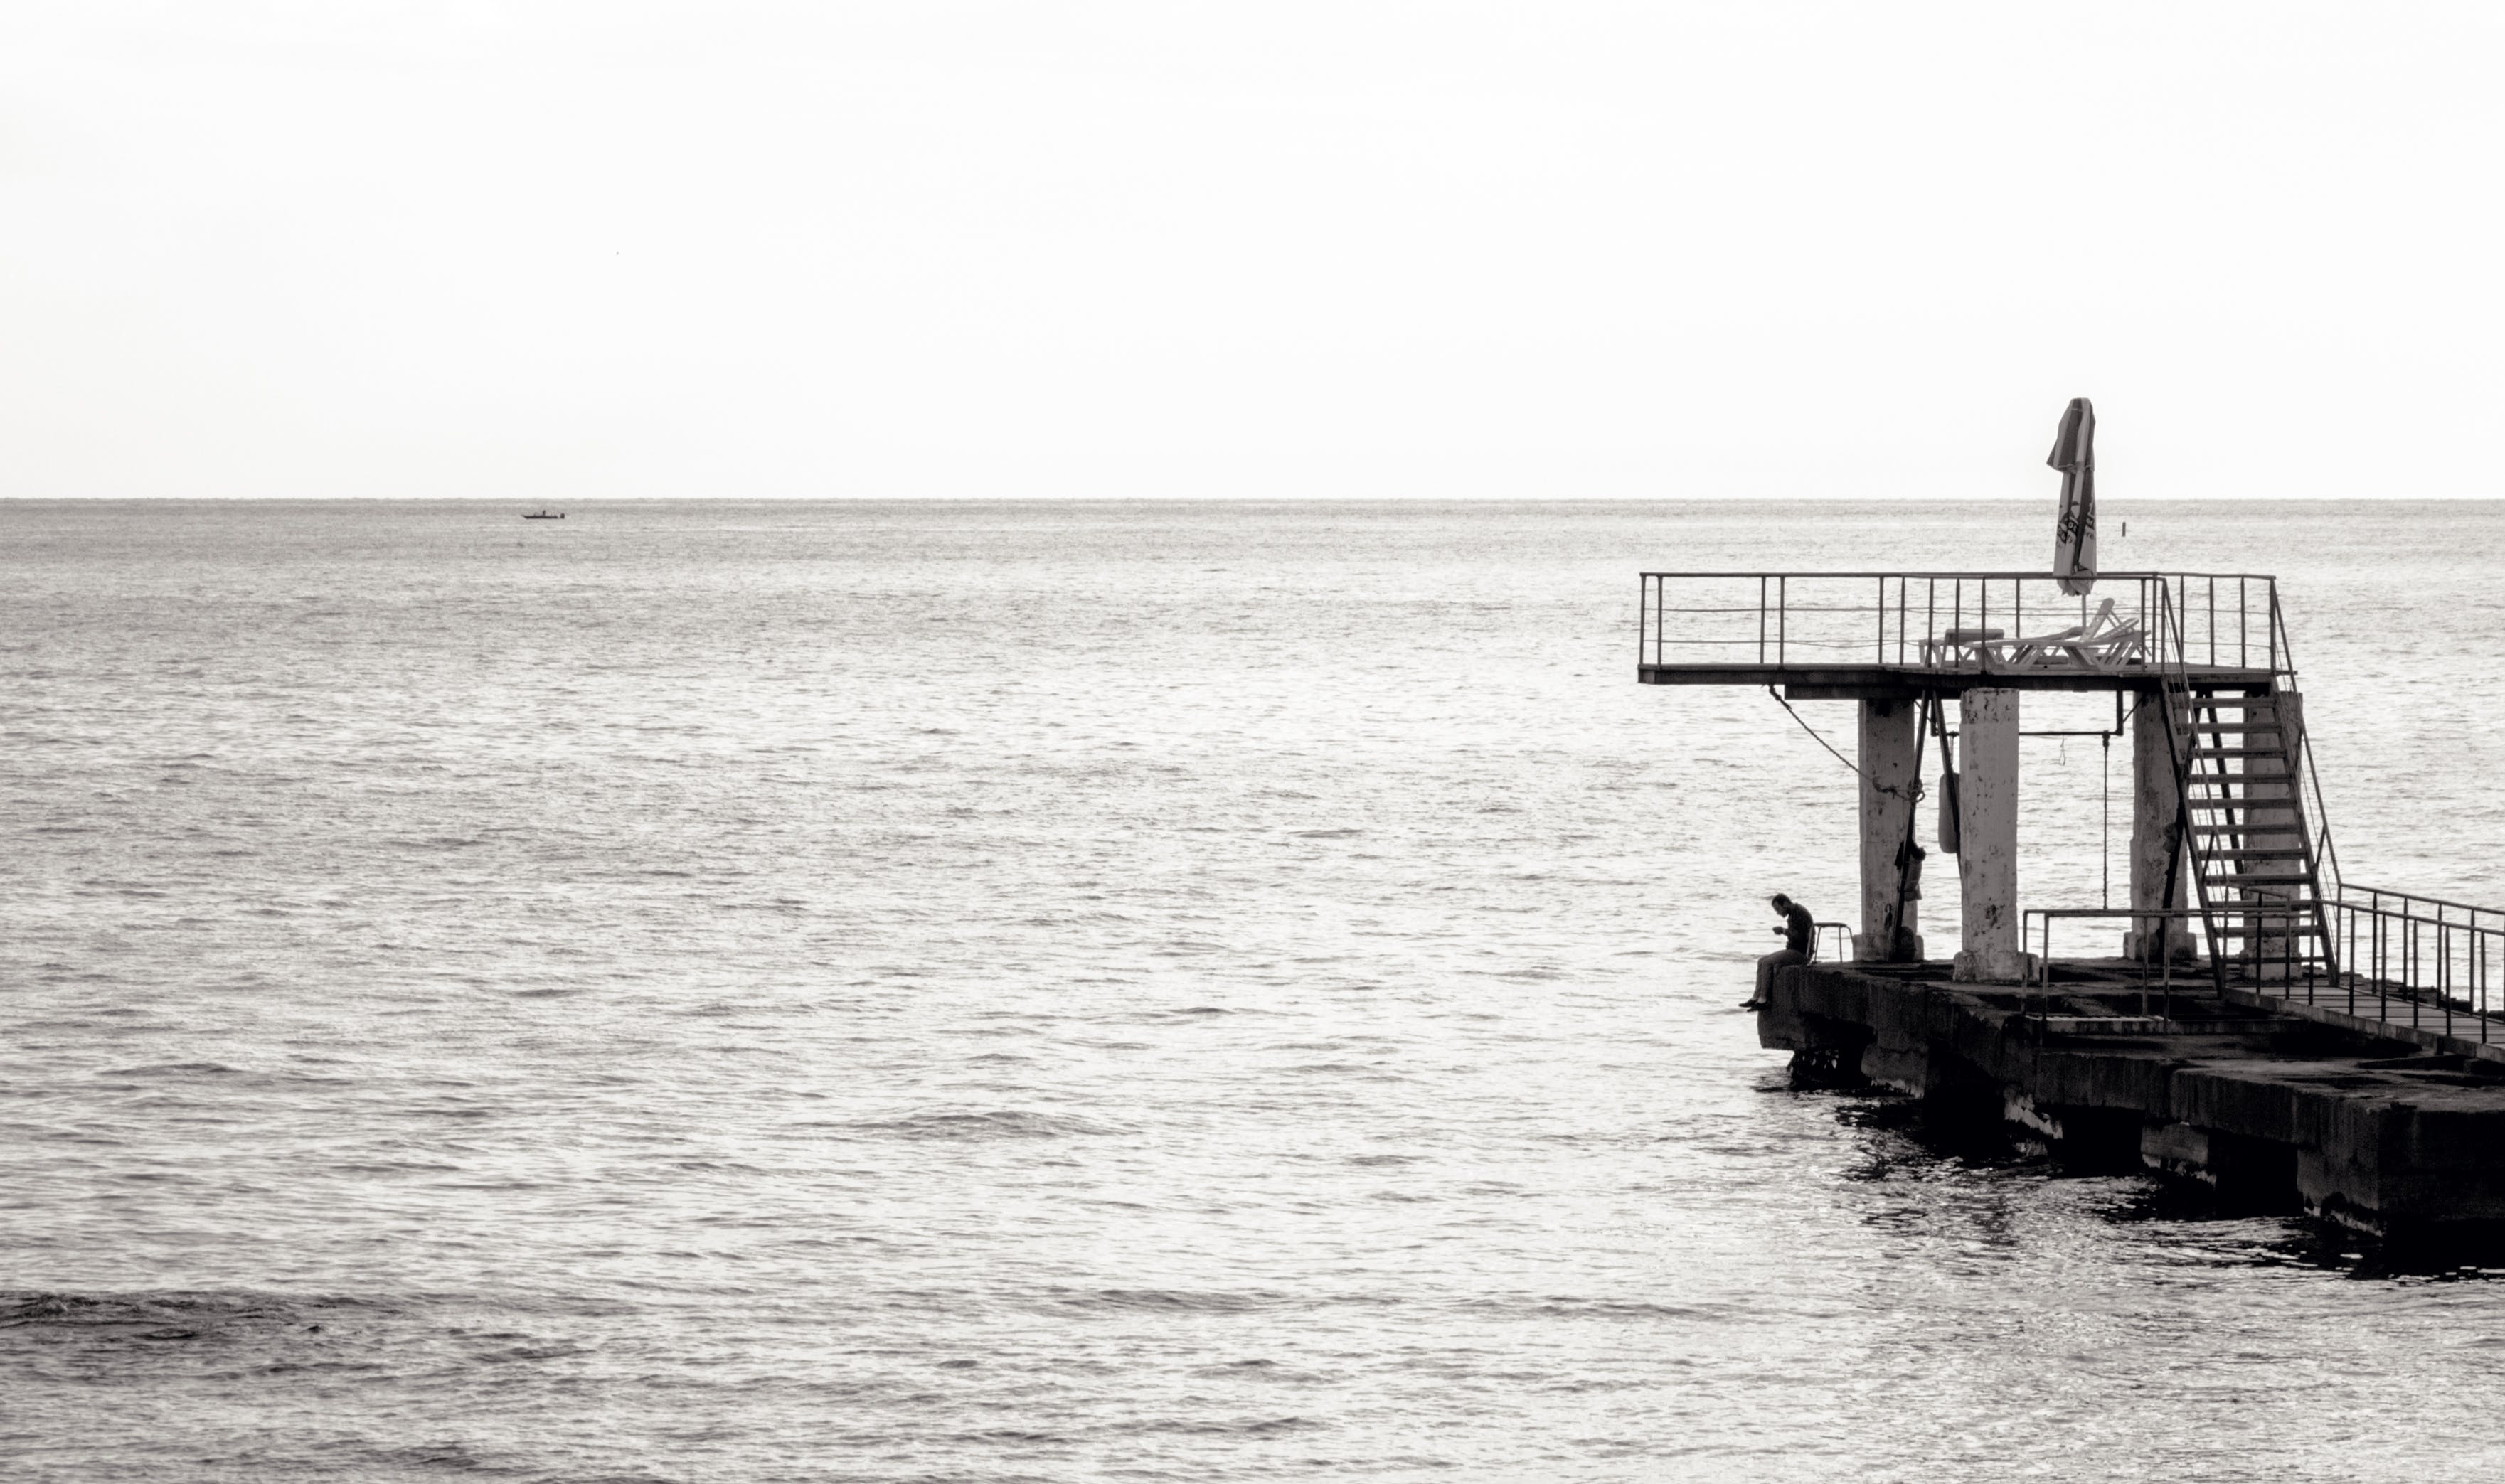 Grayscale Photo of Sea Diving Port